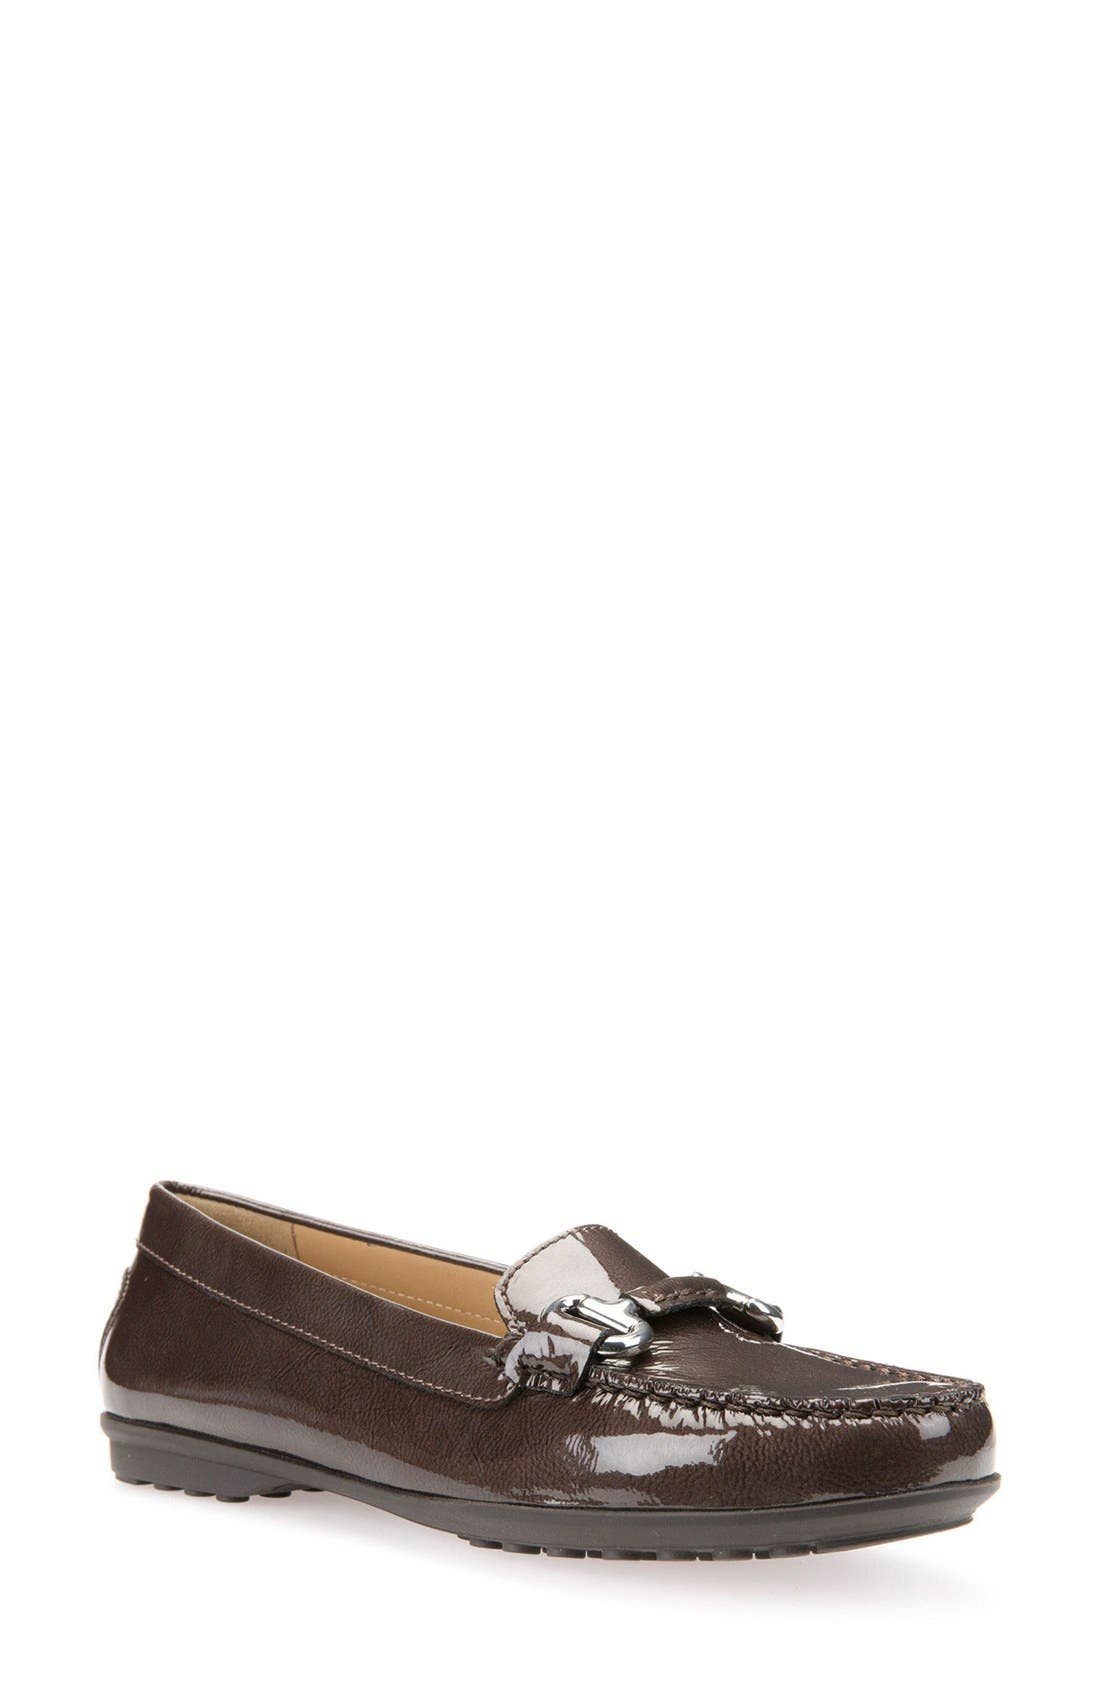 Elidia Bit Water Resistant Loafer,                             Main thumbnail 1, color,                             Chestnut Leather